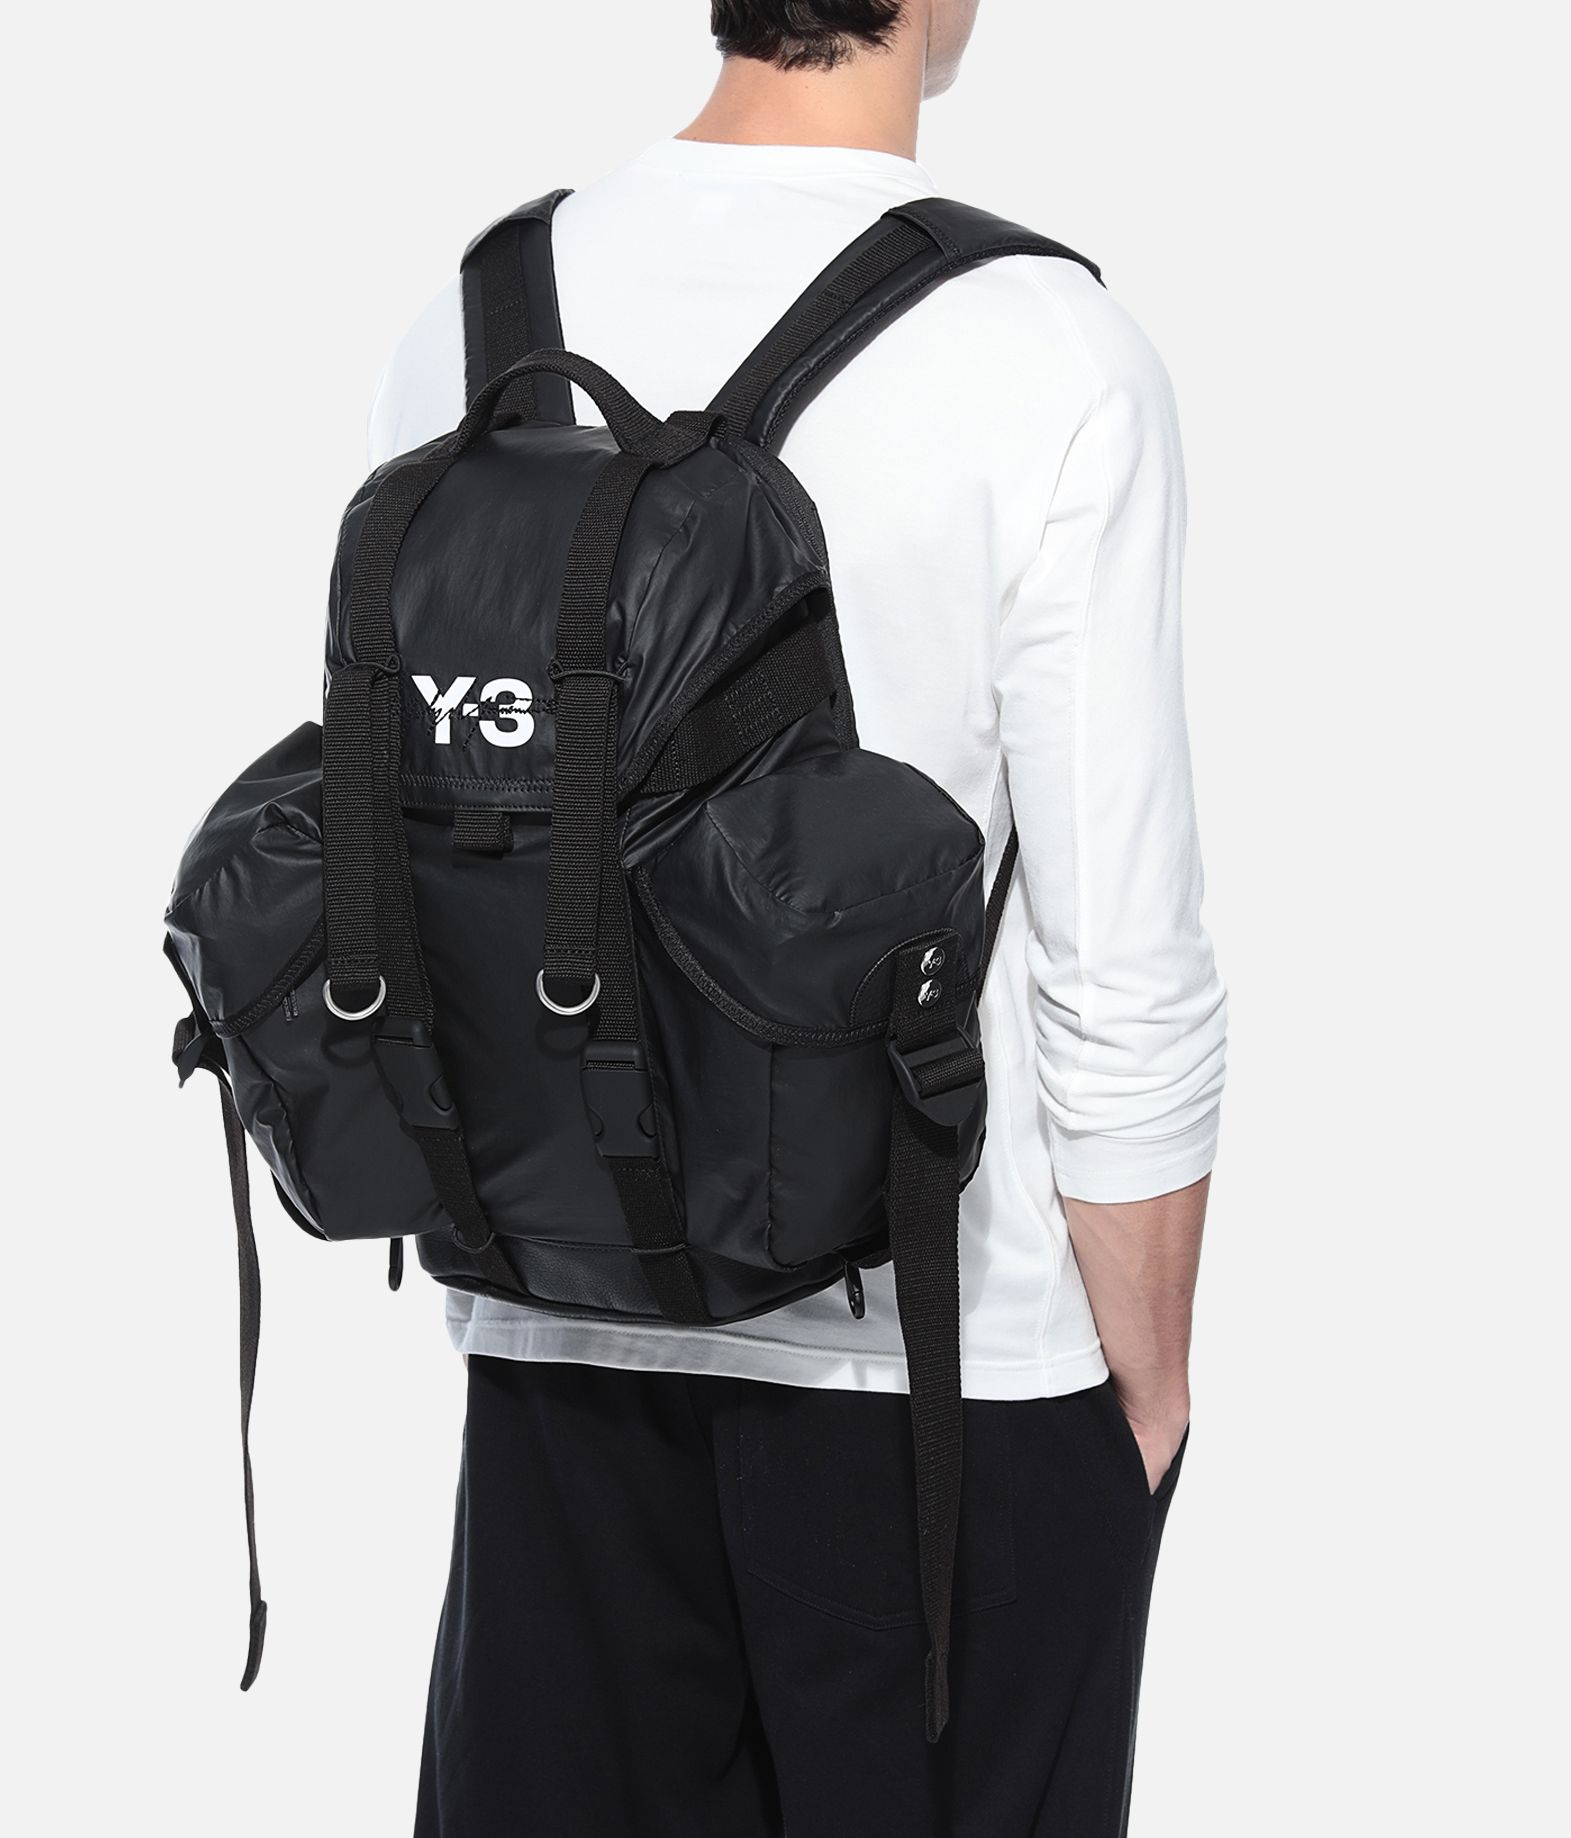 Y-3 Y-3 XS Utility Bag Backpack E a